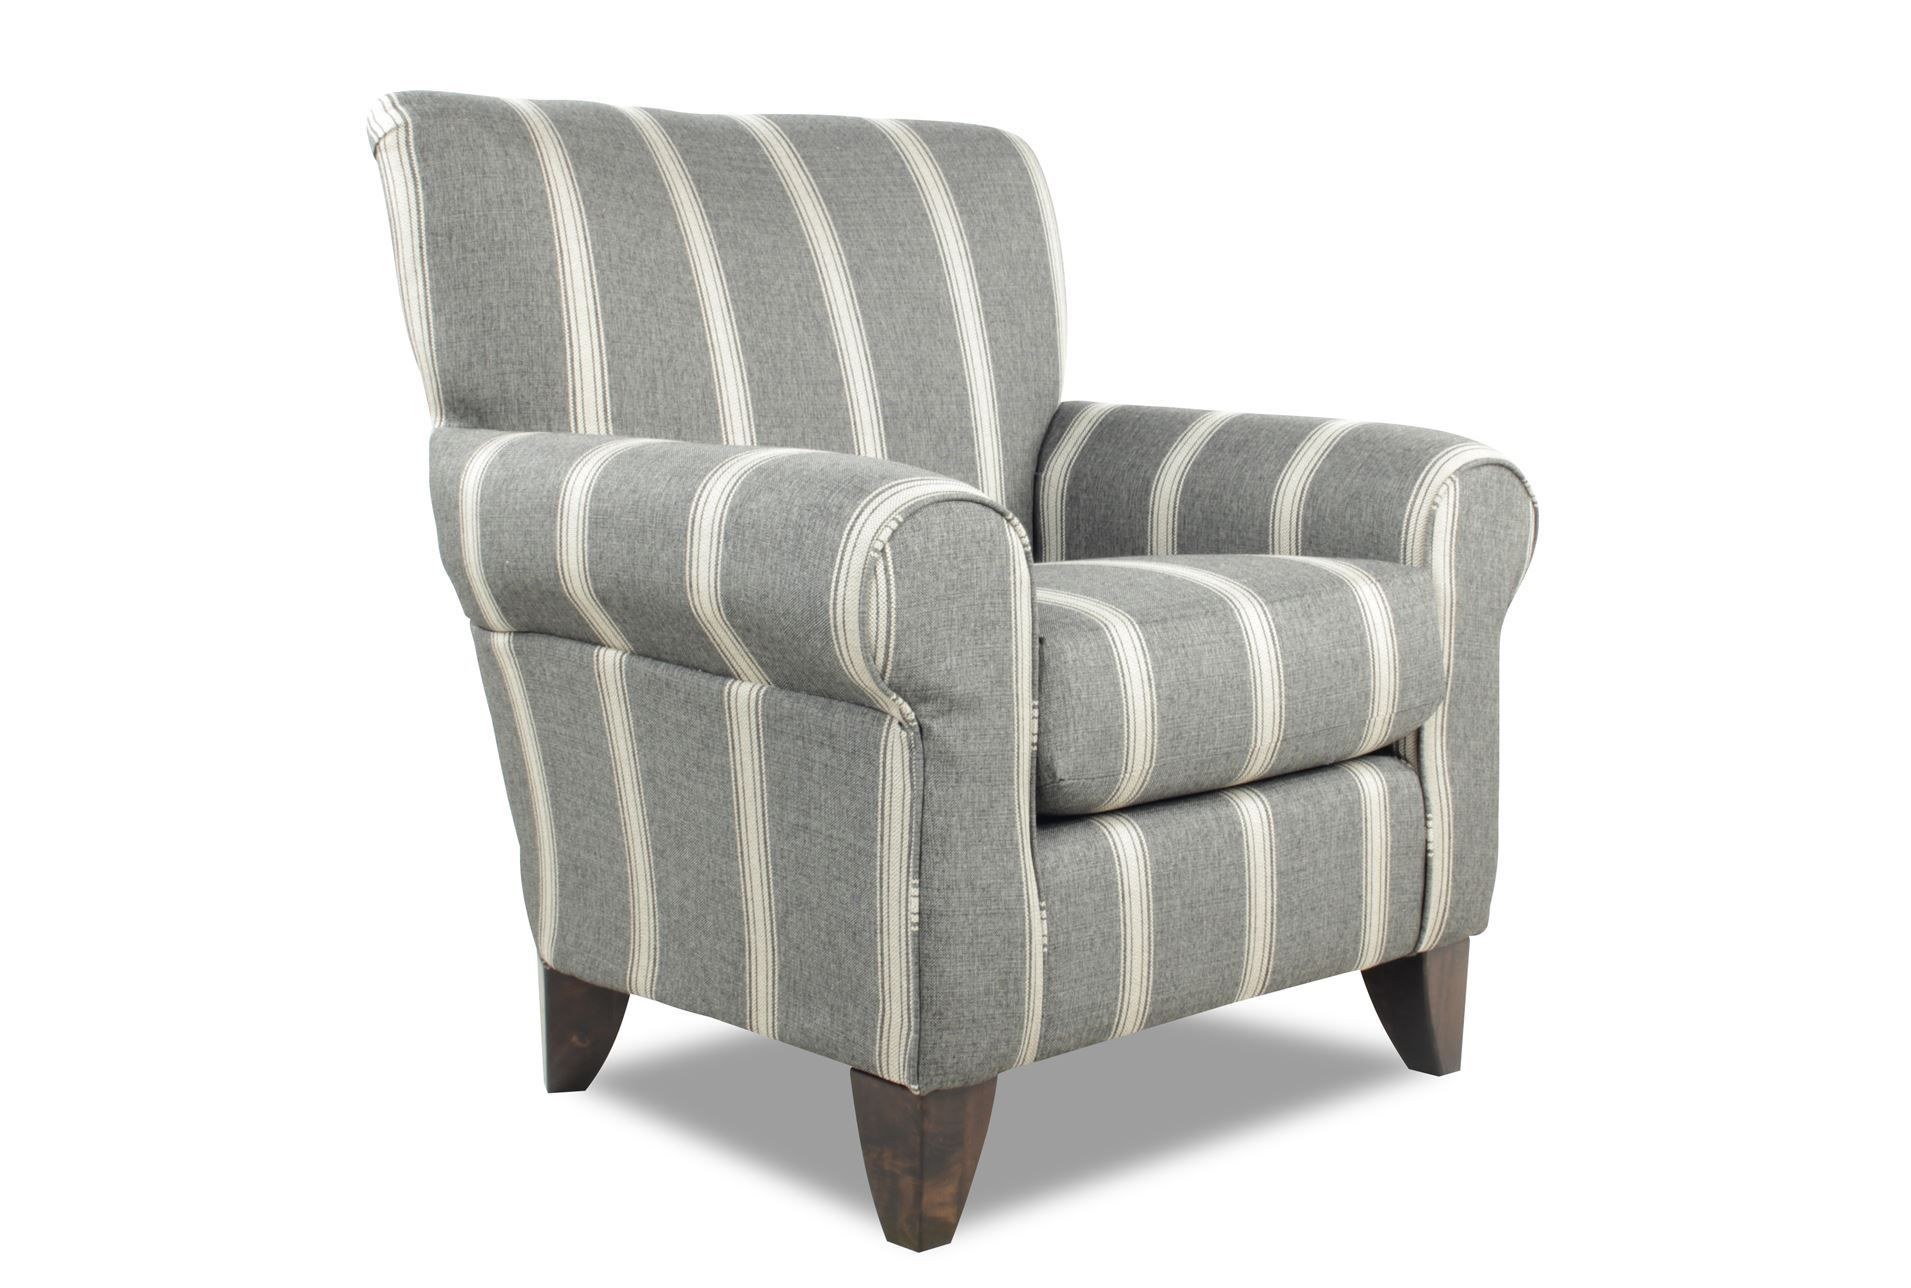 Cordelia Charcoal Accent Chair 34l 37w 38h 495 Home Living